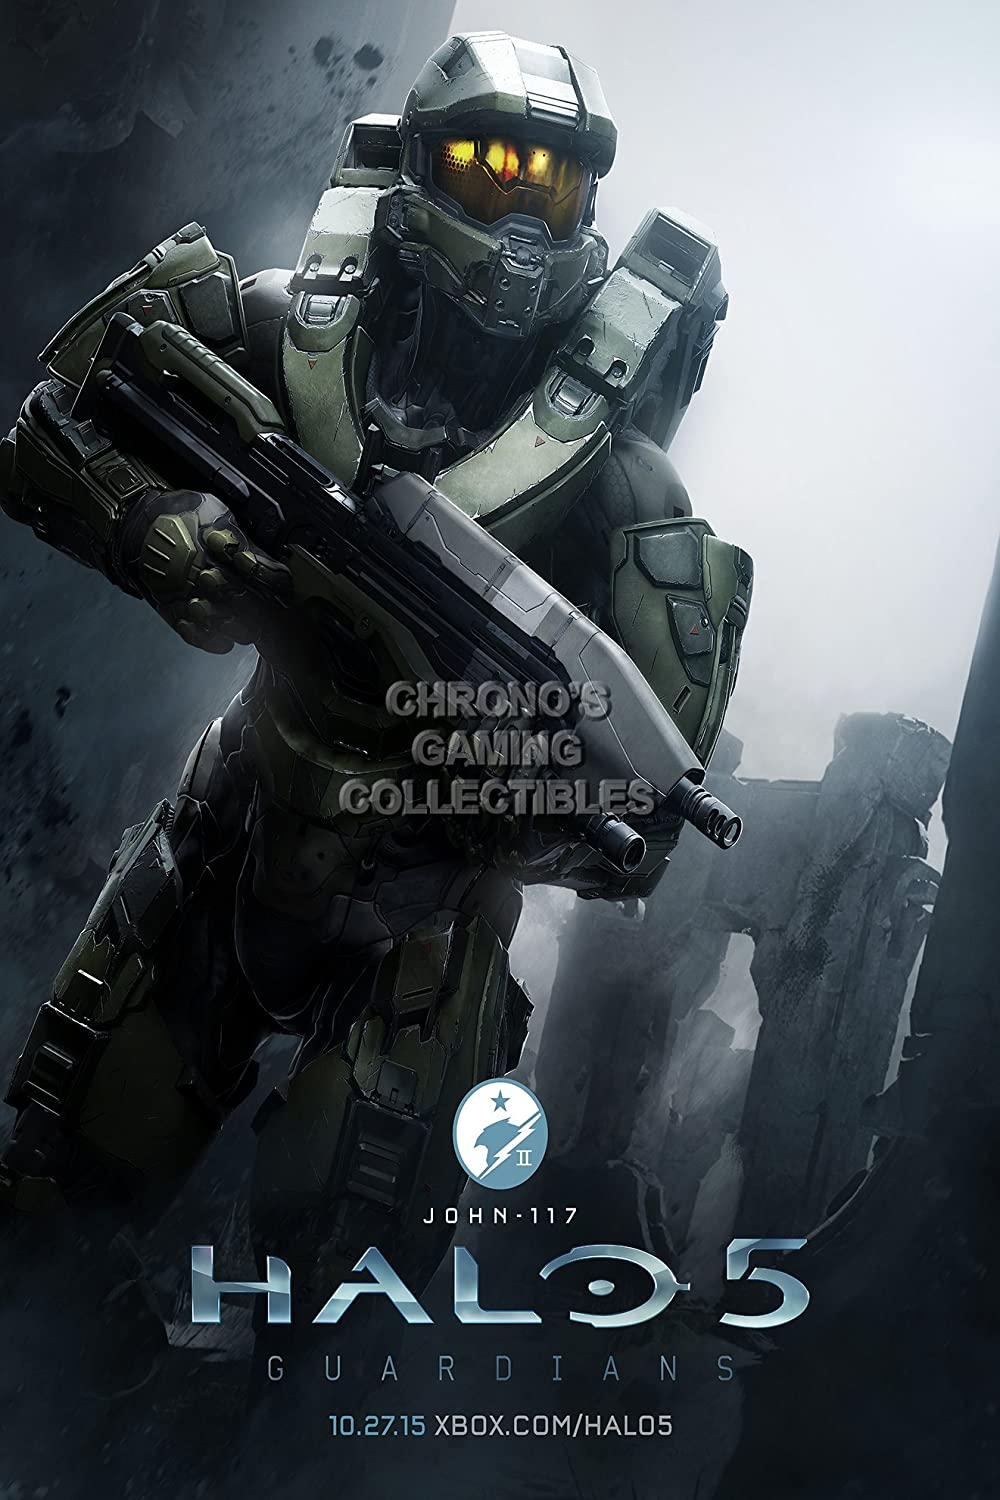 CGC enorme cartel – Halo 5 Chief Xbox 360 One – hal034, papel, 24 ...